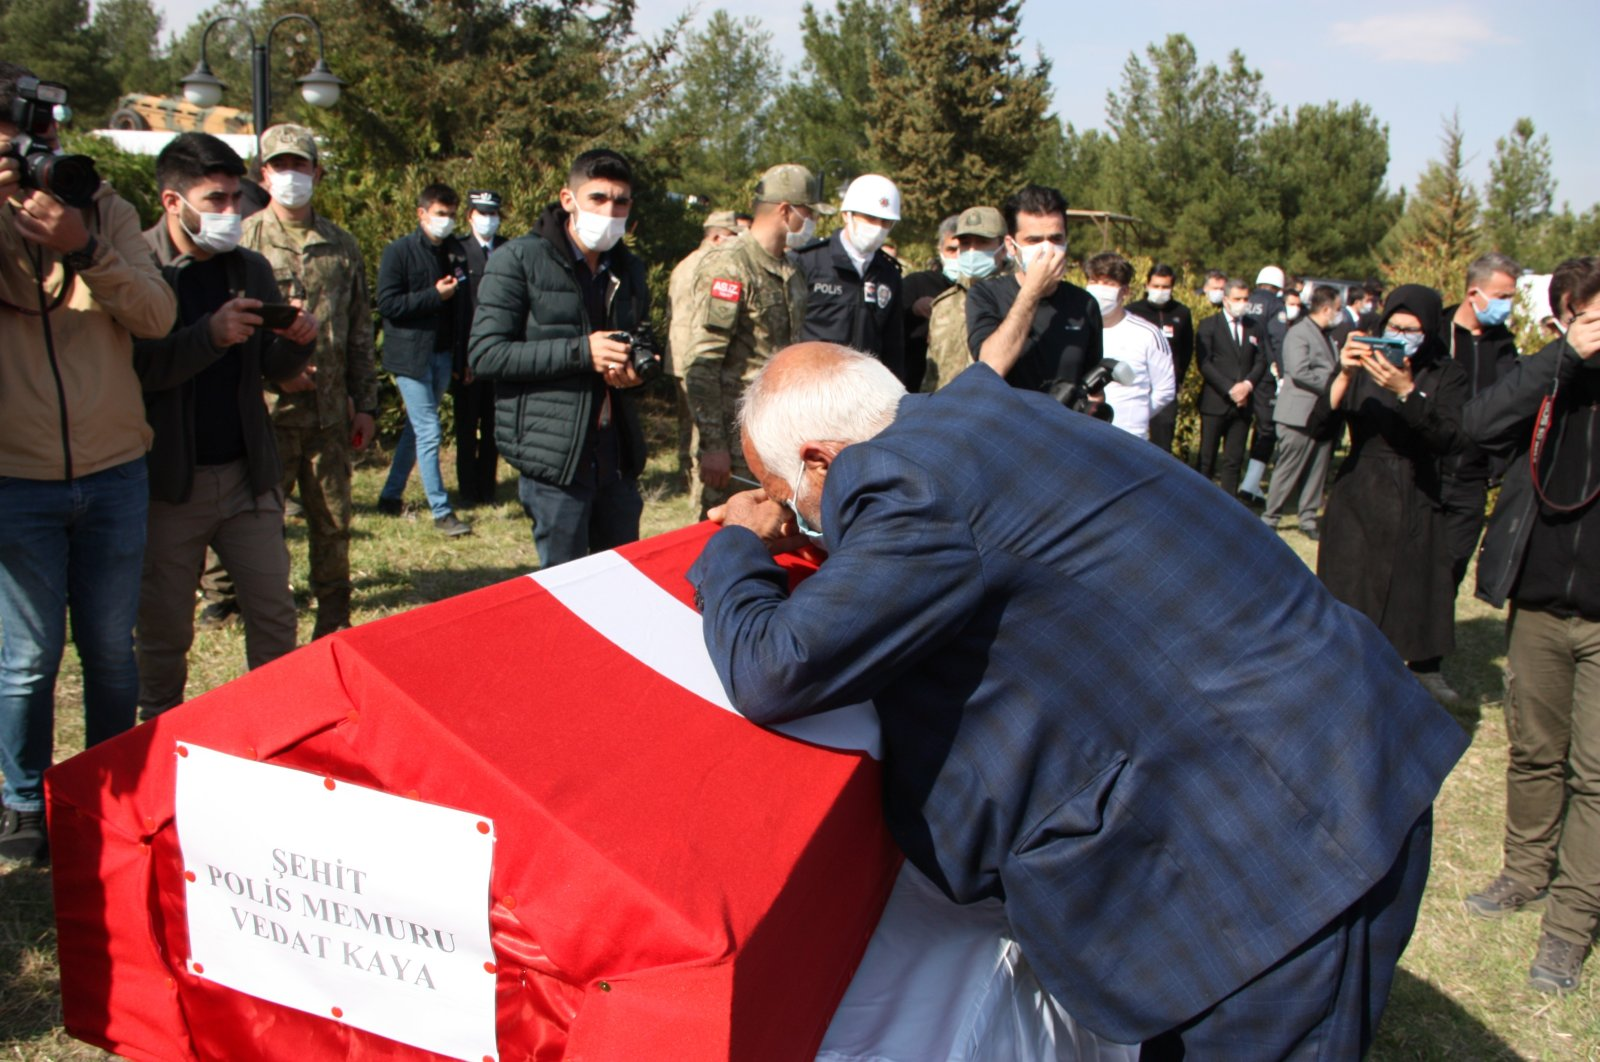 Şeyhmus Kaya, the father of slain police officer Vedat Kaya, bids farewell to the martyr during a funeral ceremony organized in his hometown southeastern Mardin province on Feb. 15, 2021 (AA Photo)